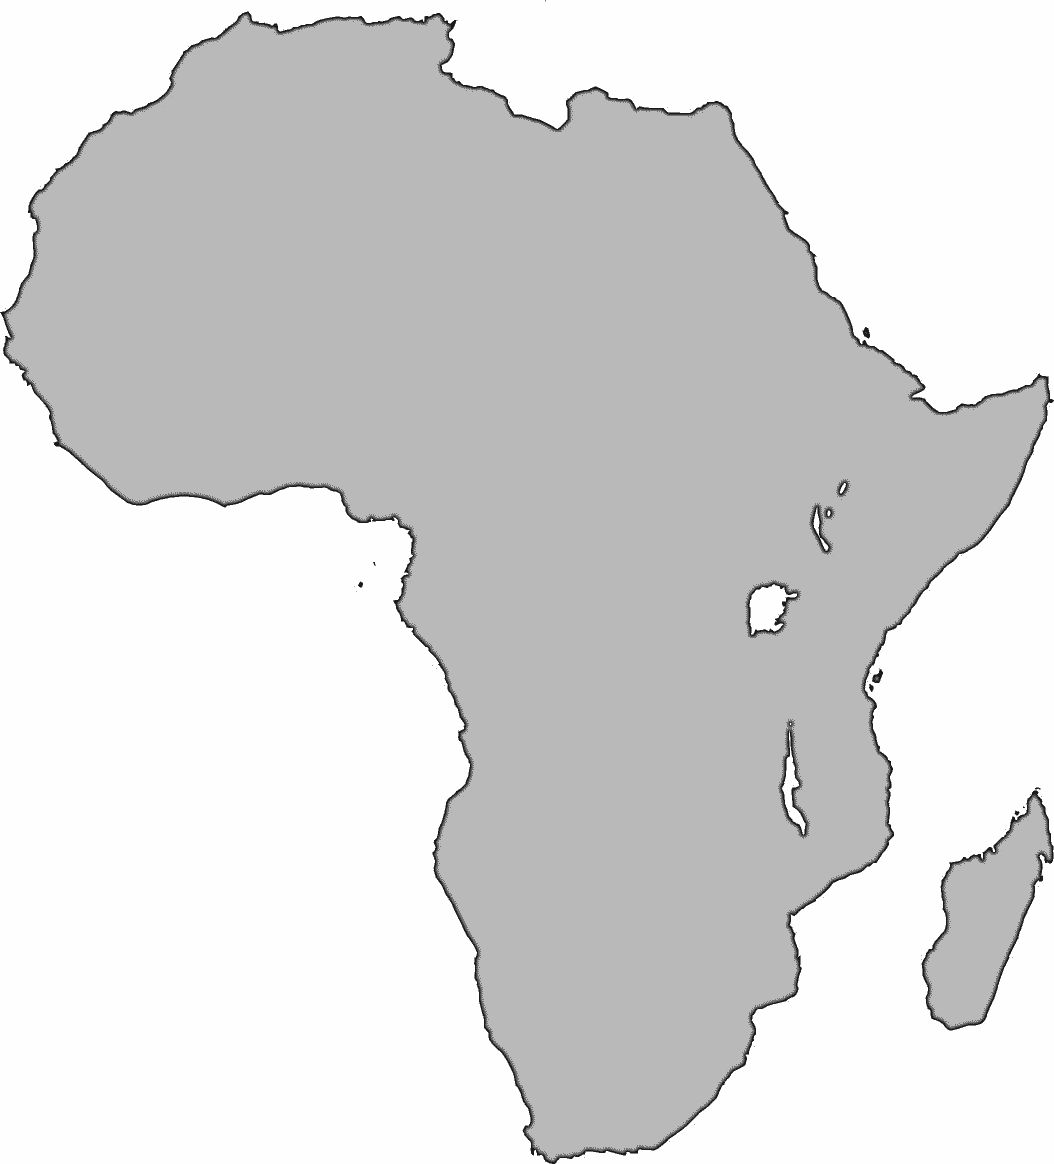 Africa clipart continent africa. Large geography continents png